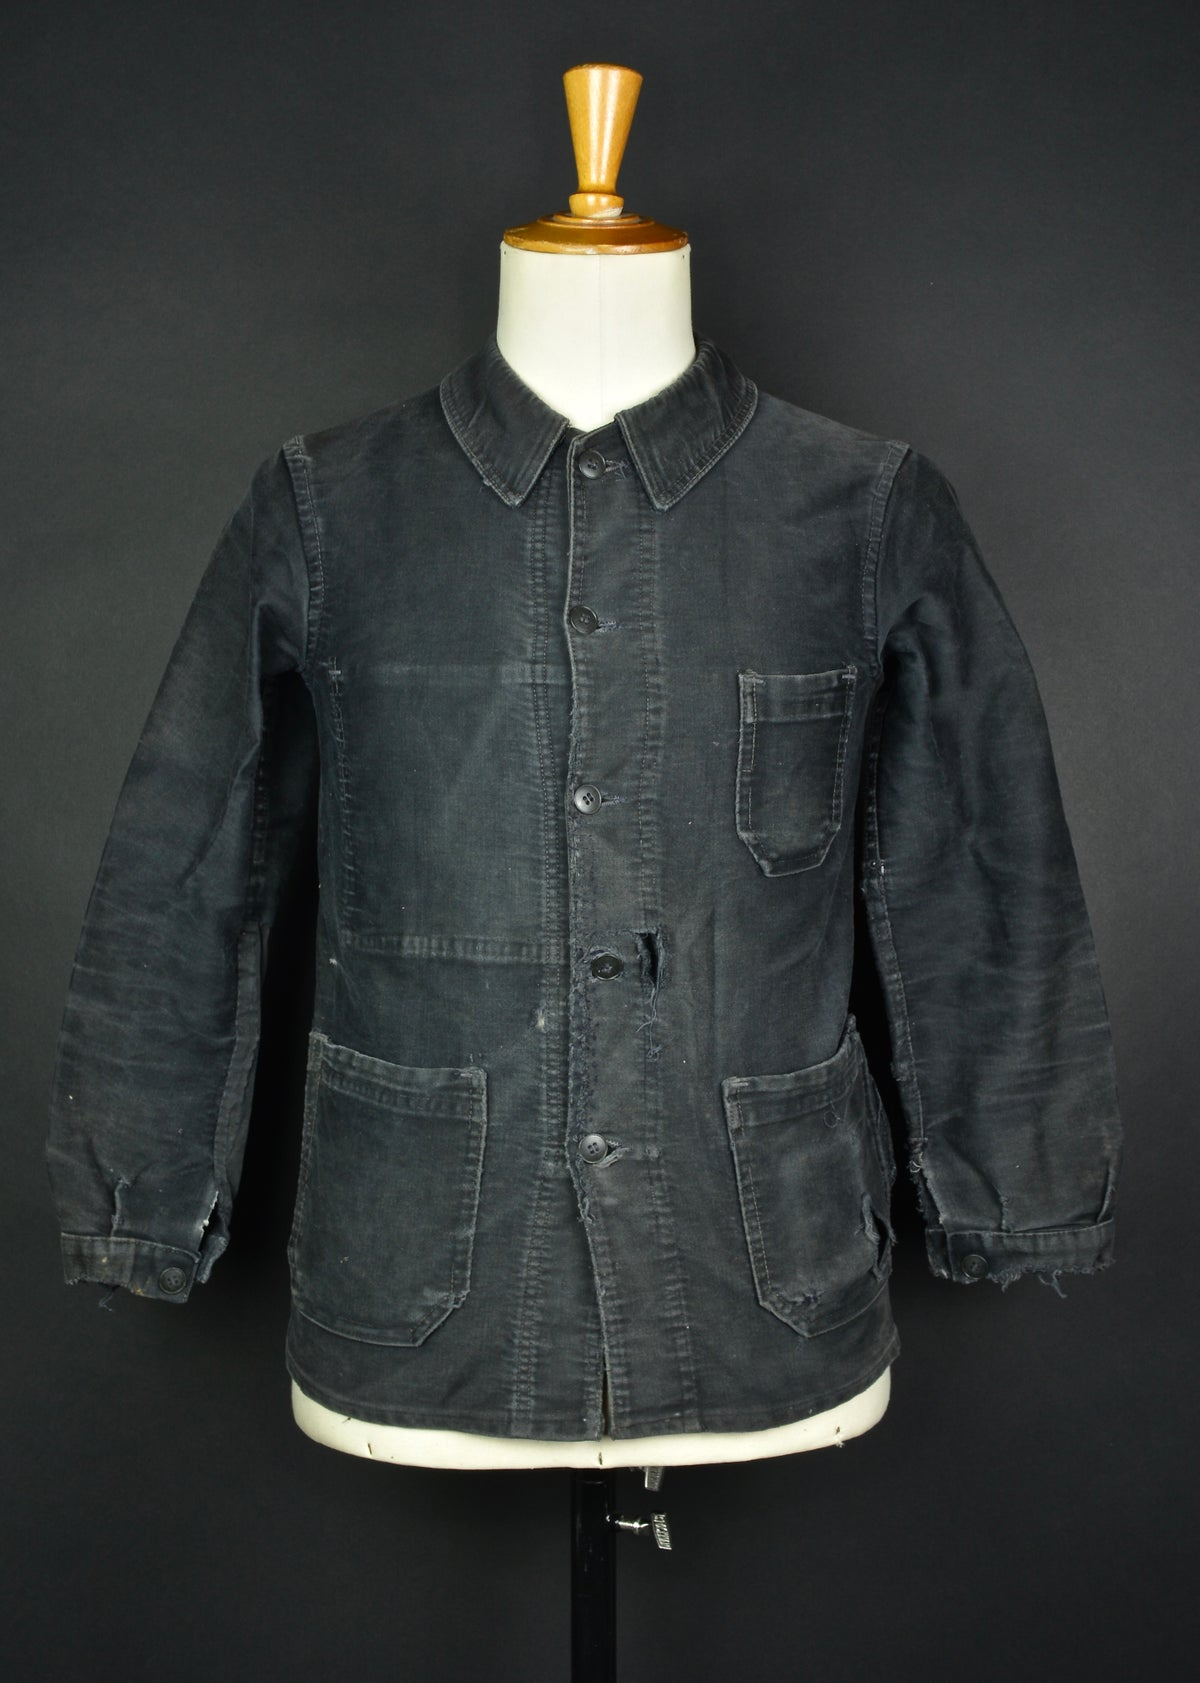 Image of 1940'S FRENCH BLACK MOLESKIN WORK JACKET FADED